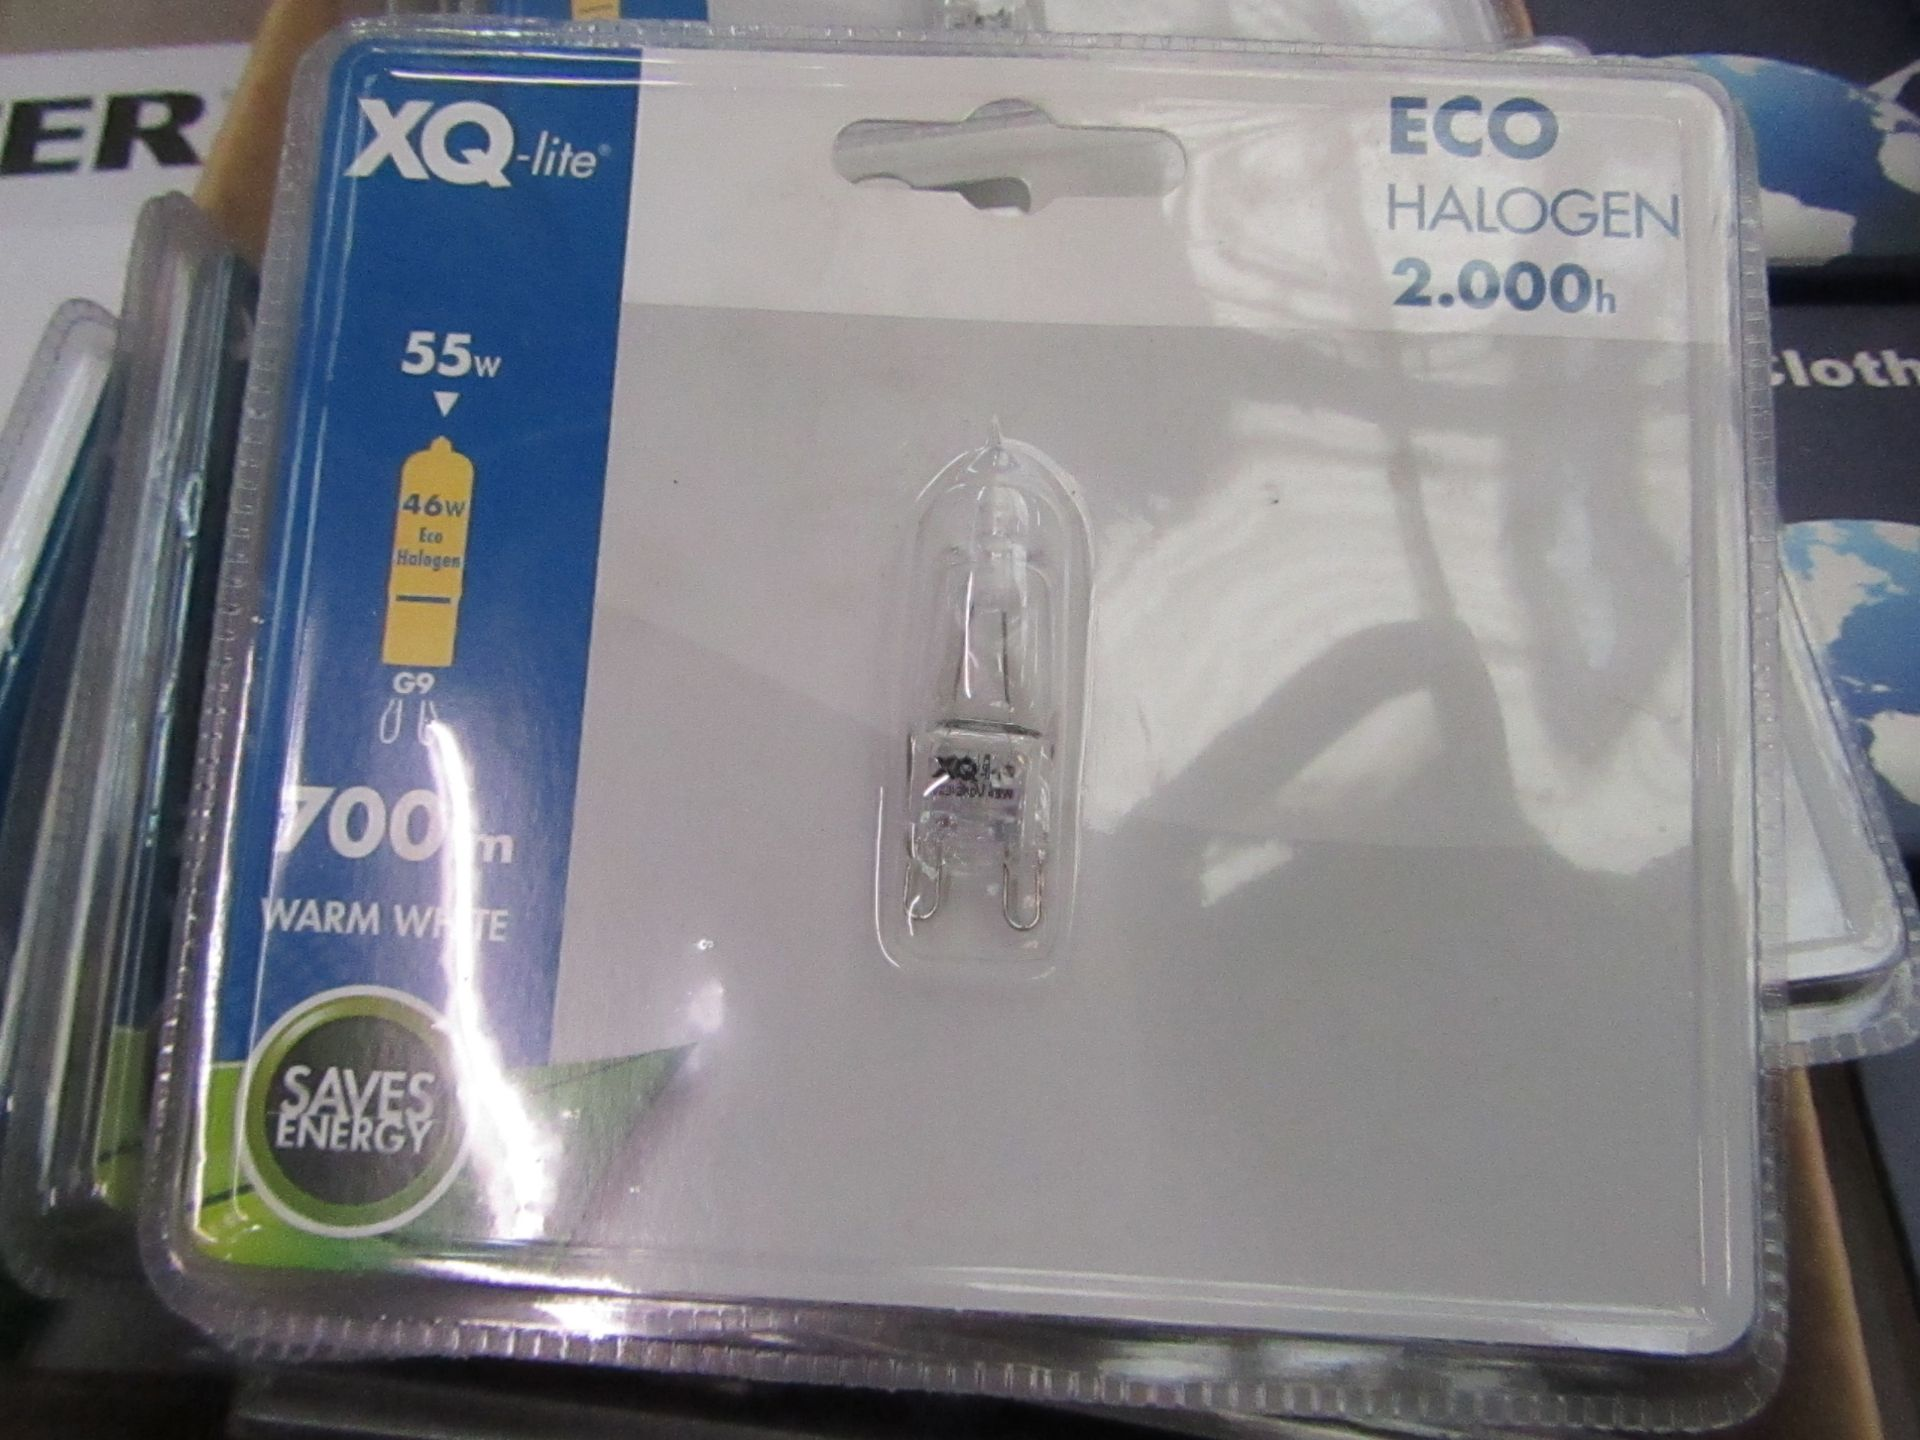 Lot 54 - XQ-Lite halogen bulb, new and packaged.